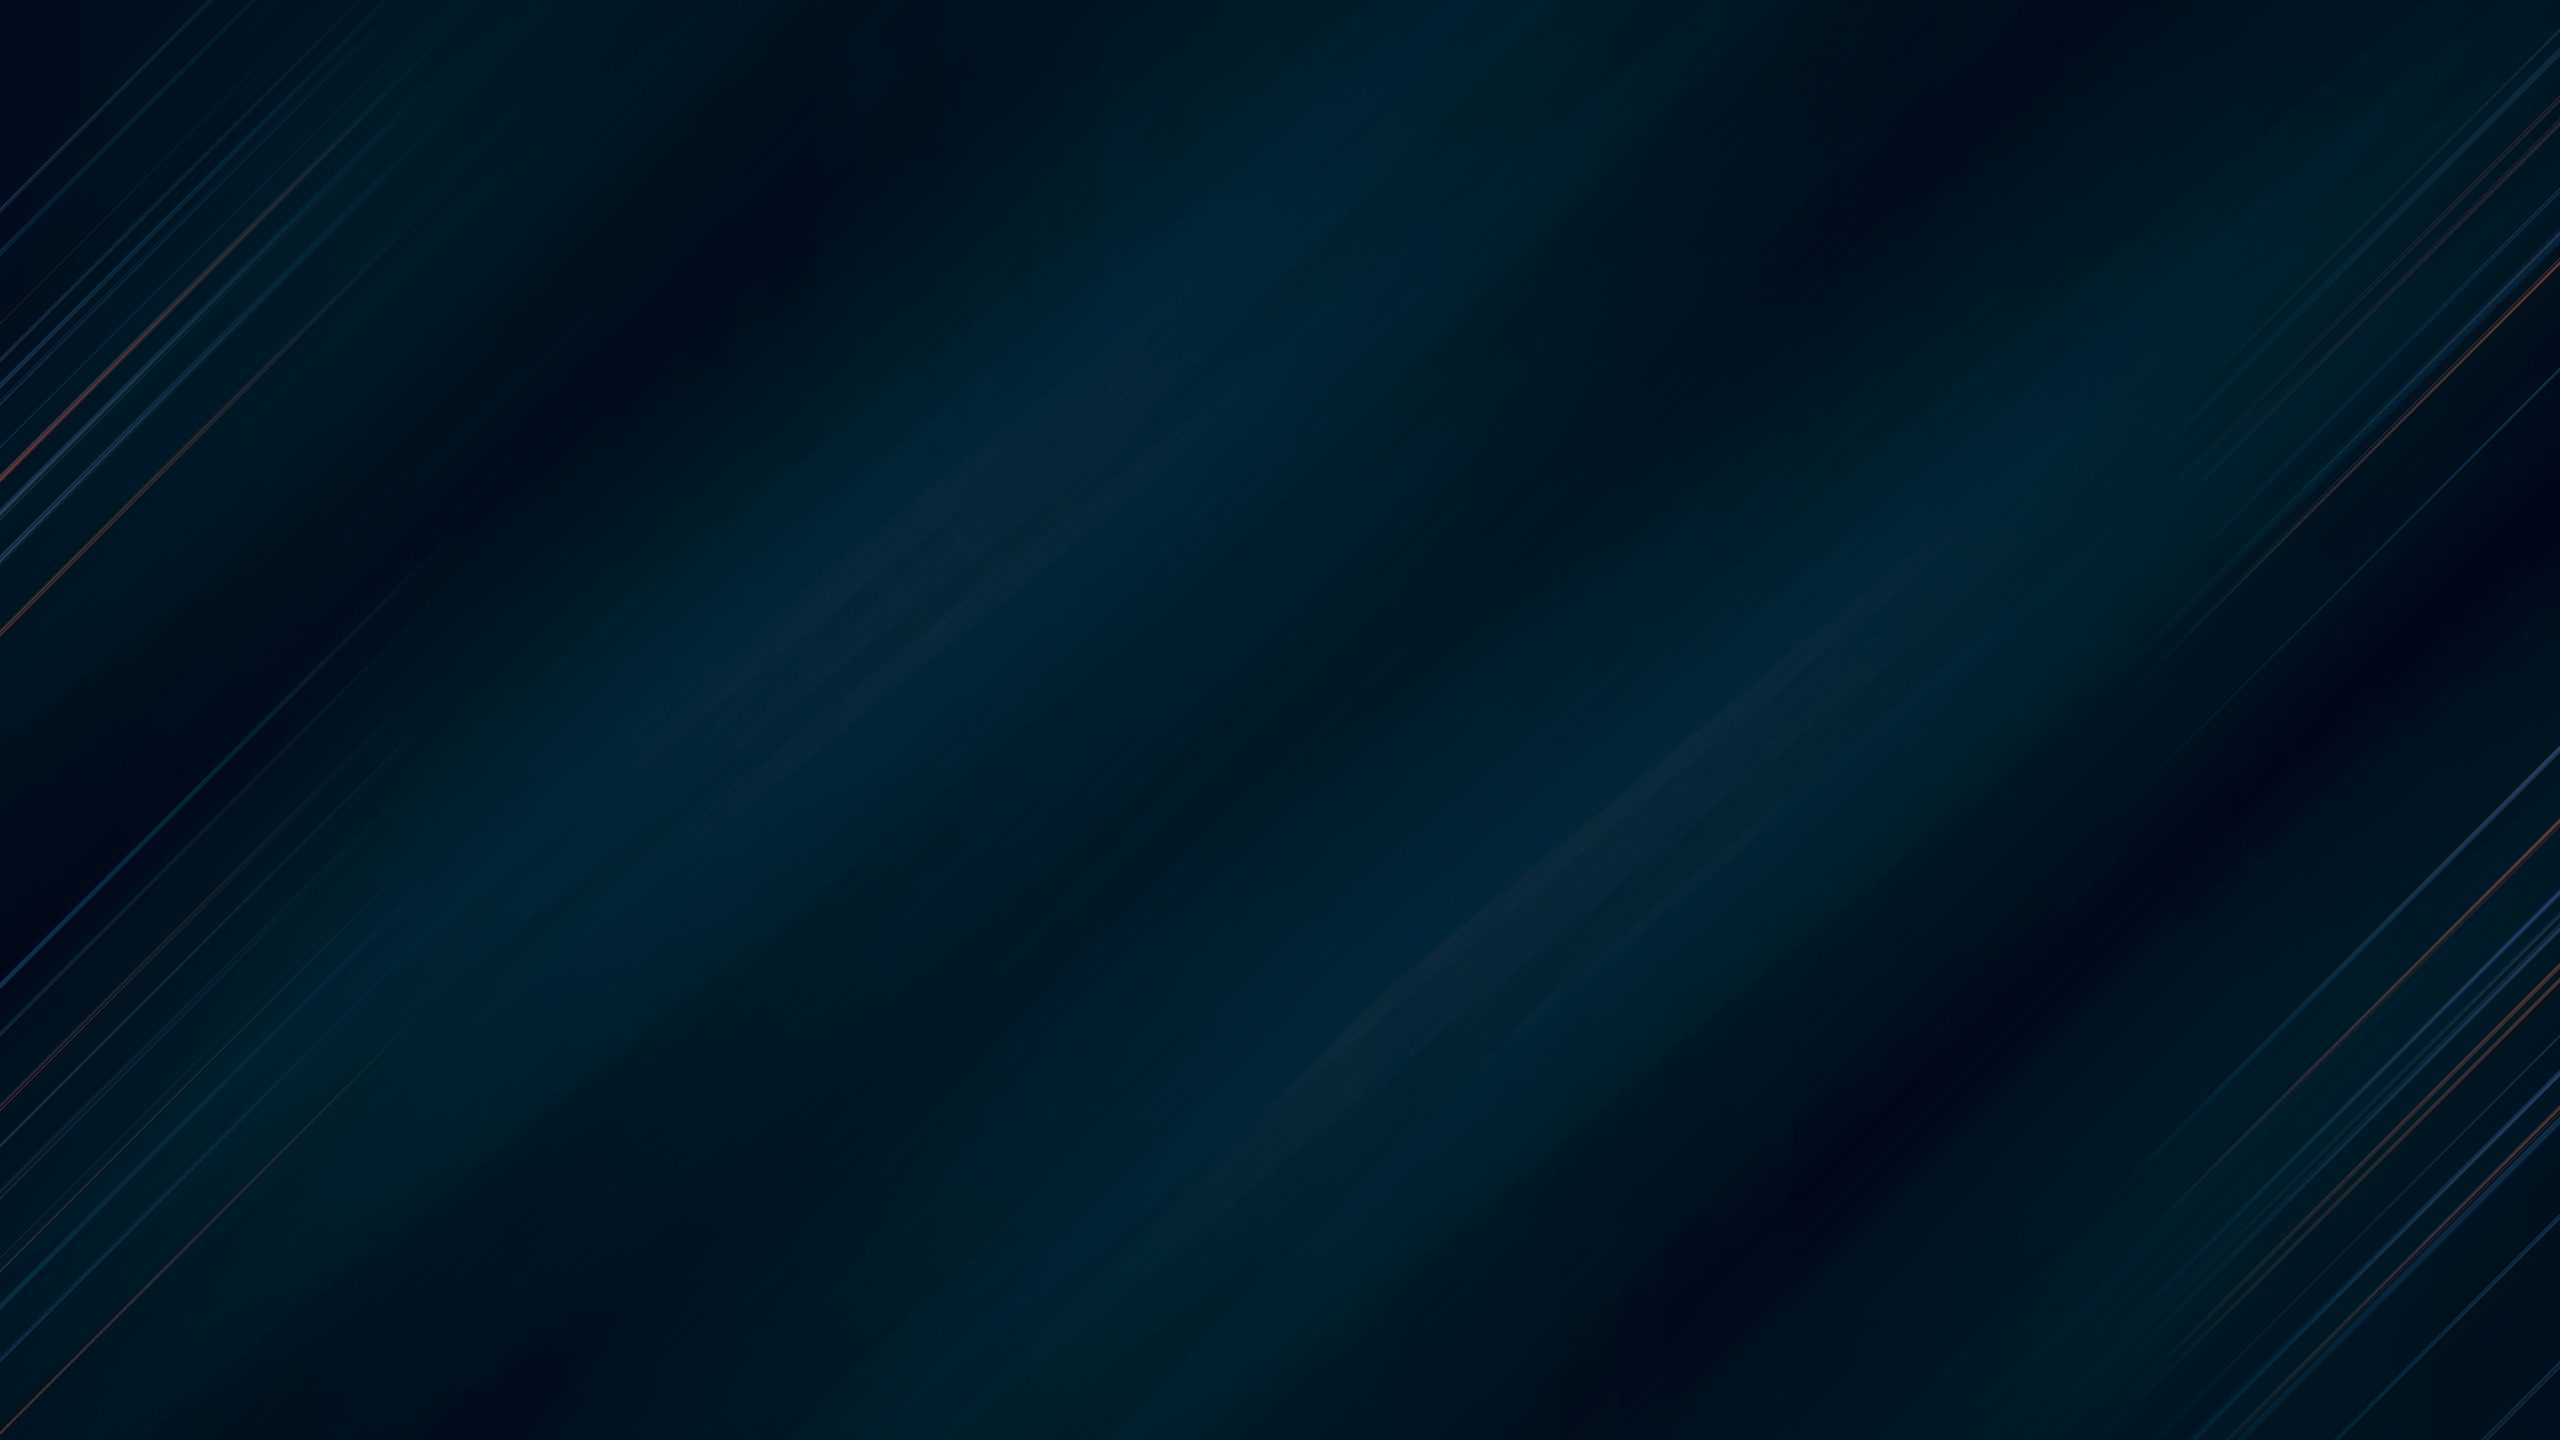 Bluish abstract background